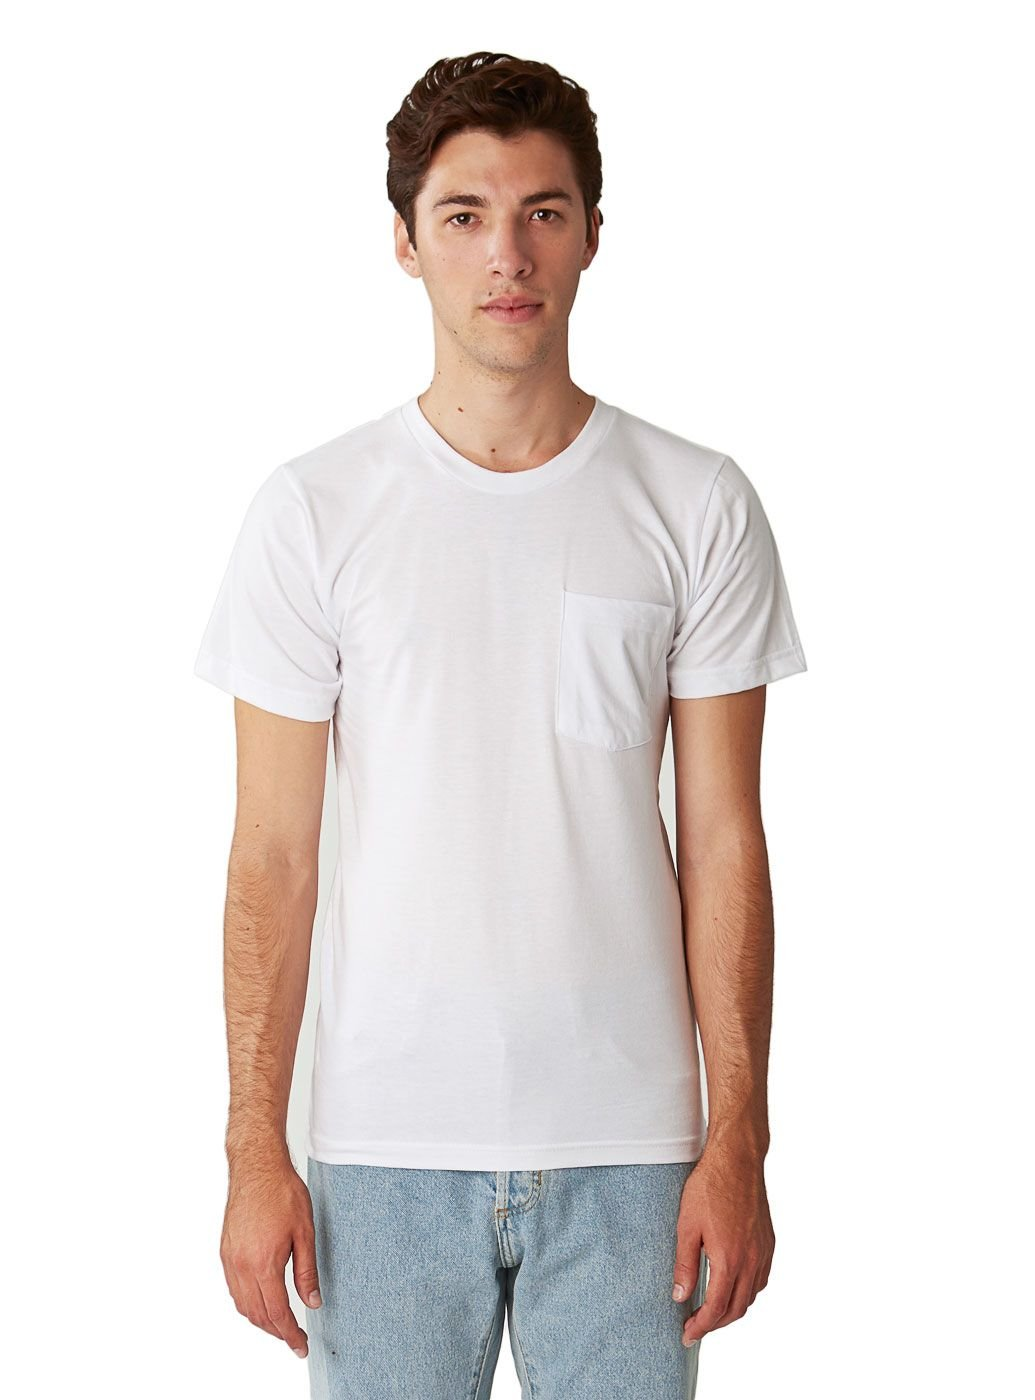 American Apparel Men Fine Jersey Crewneck Pocket T-Shirt Size M White by American Apparel (Image #1)